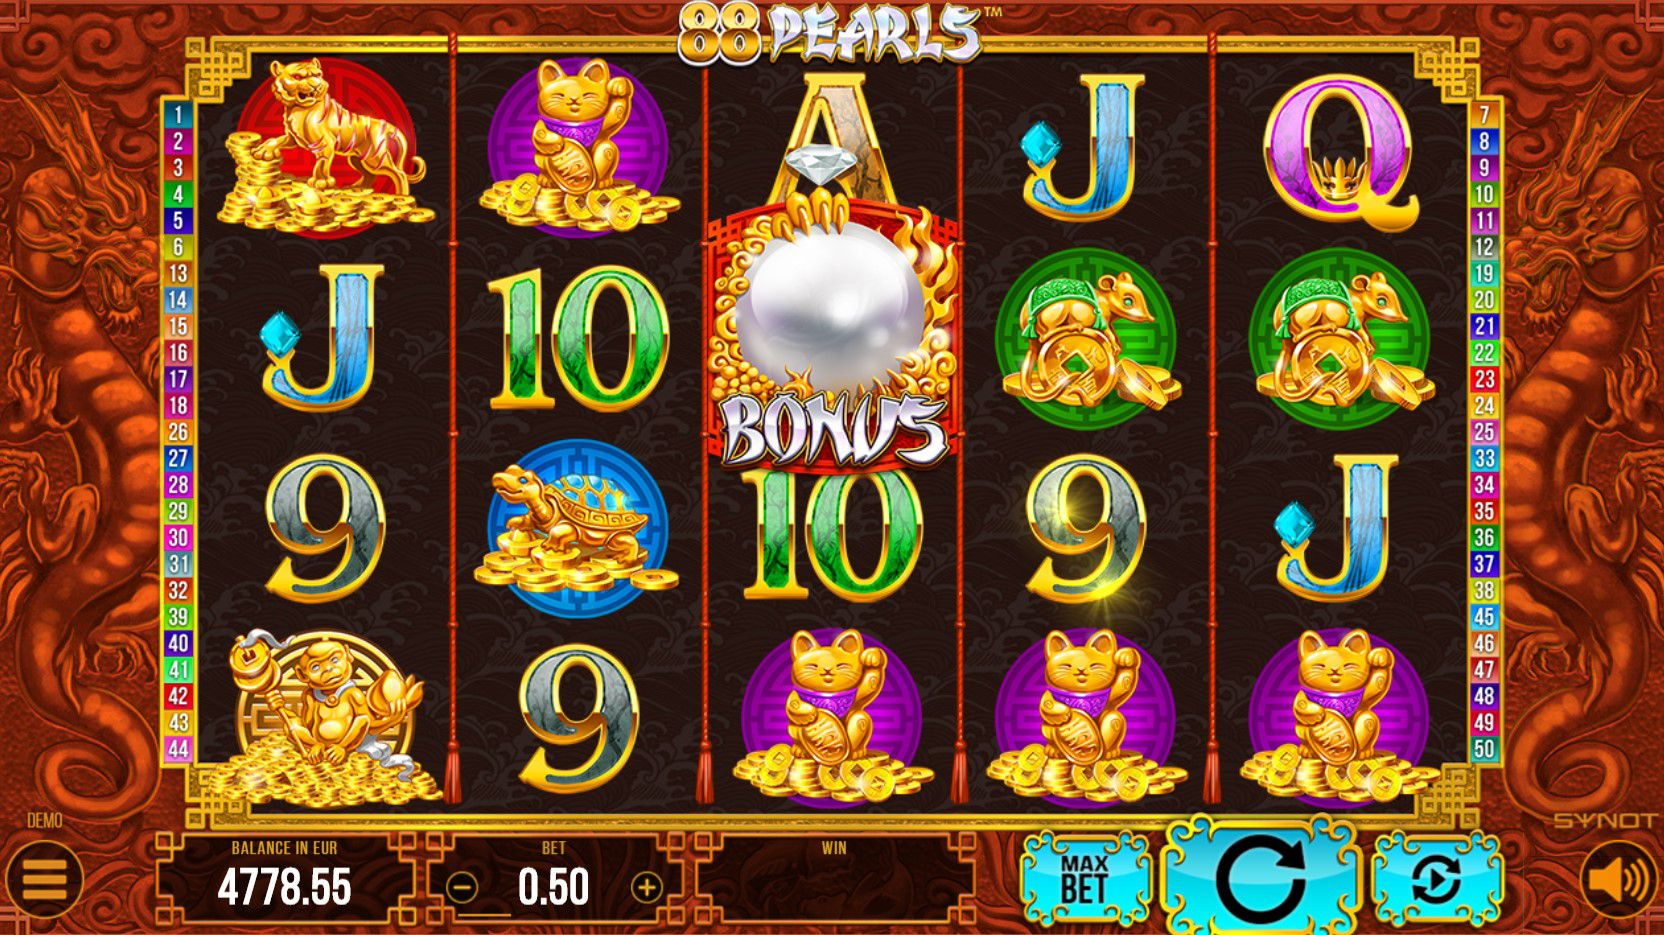 88 Pearls Slot